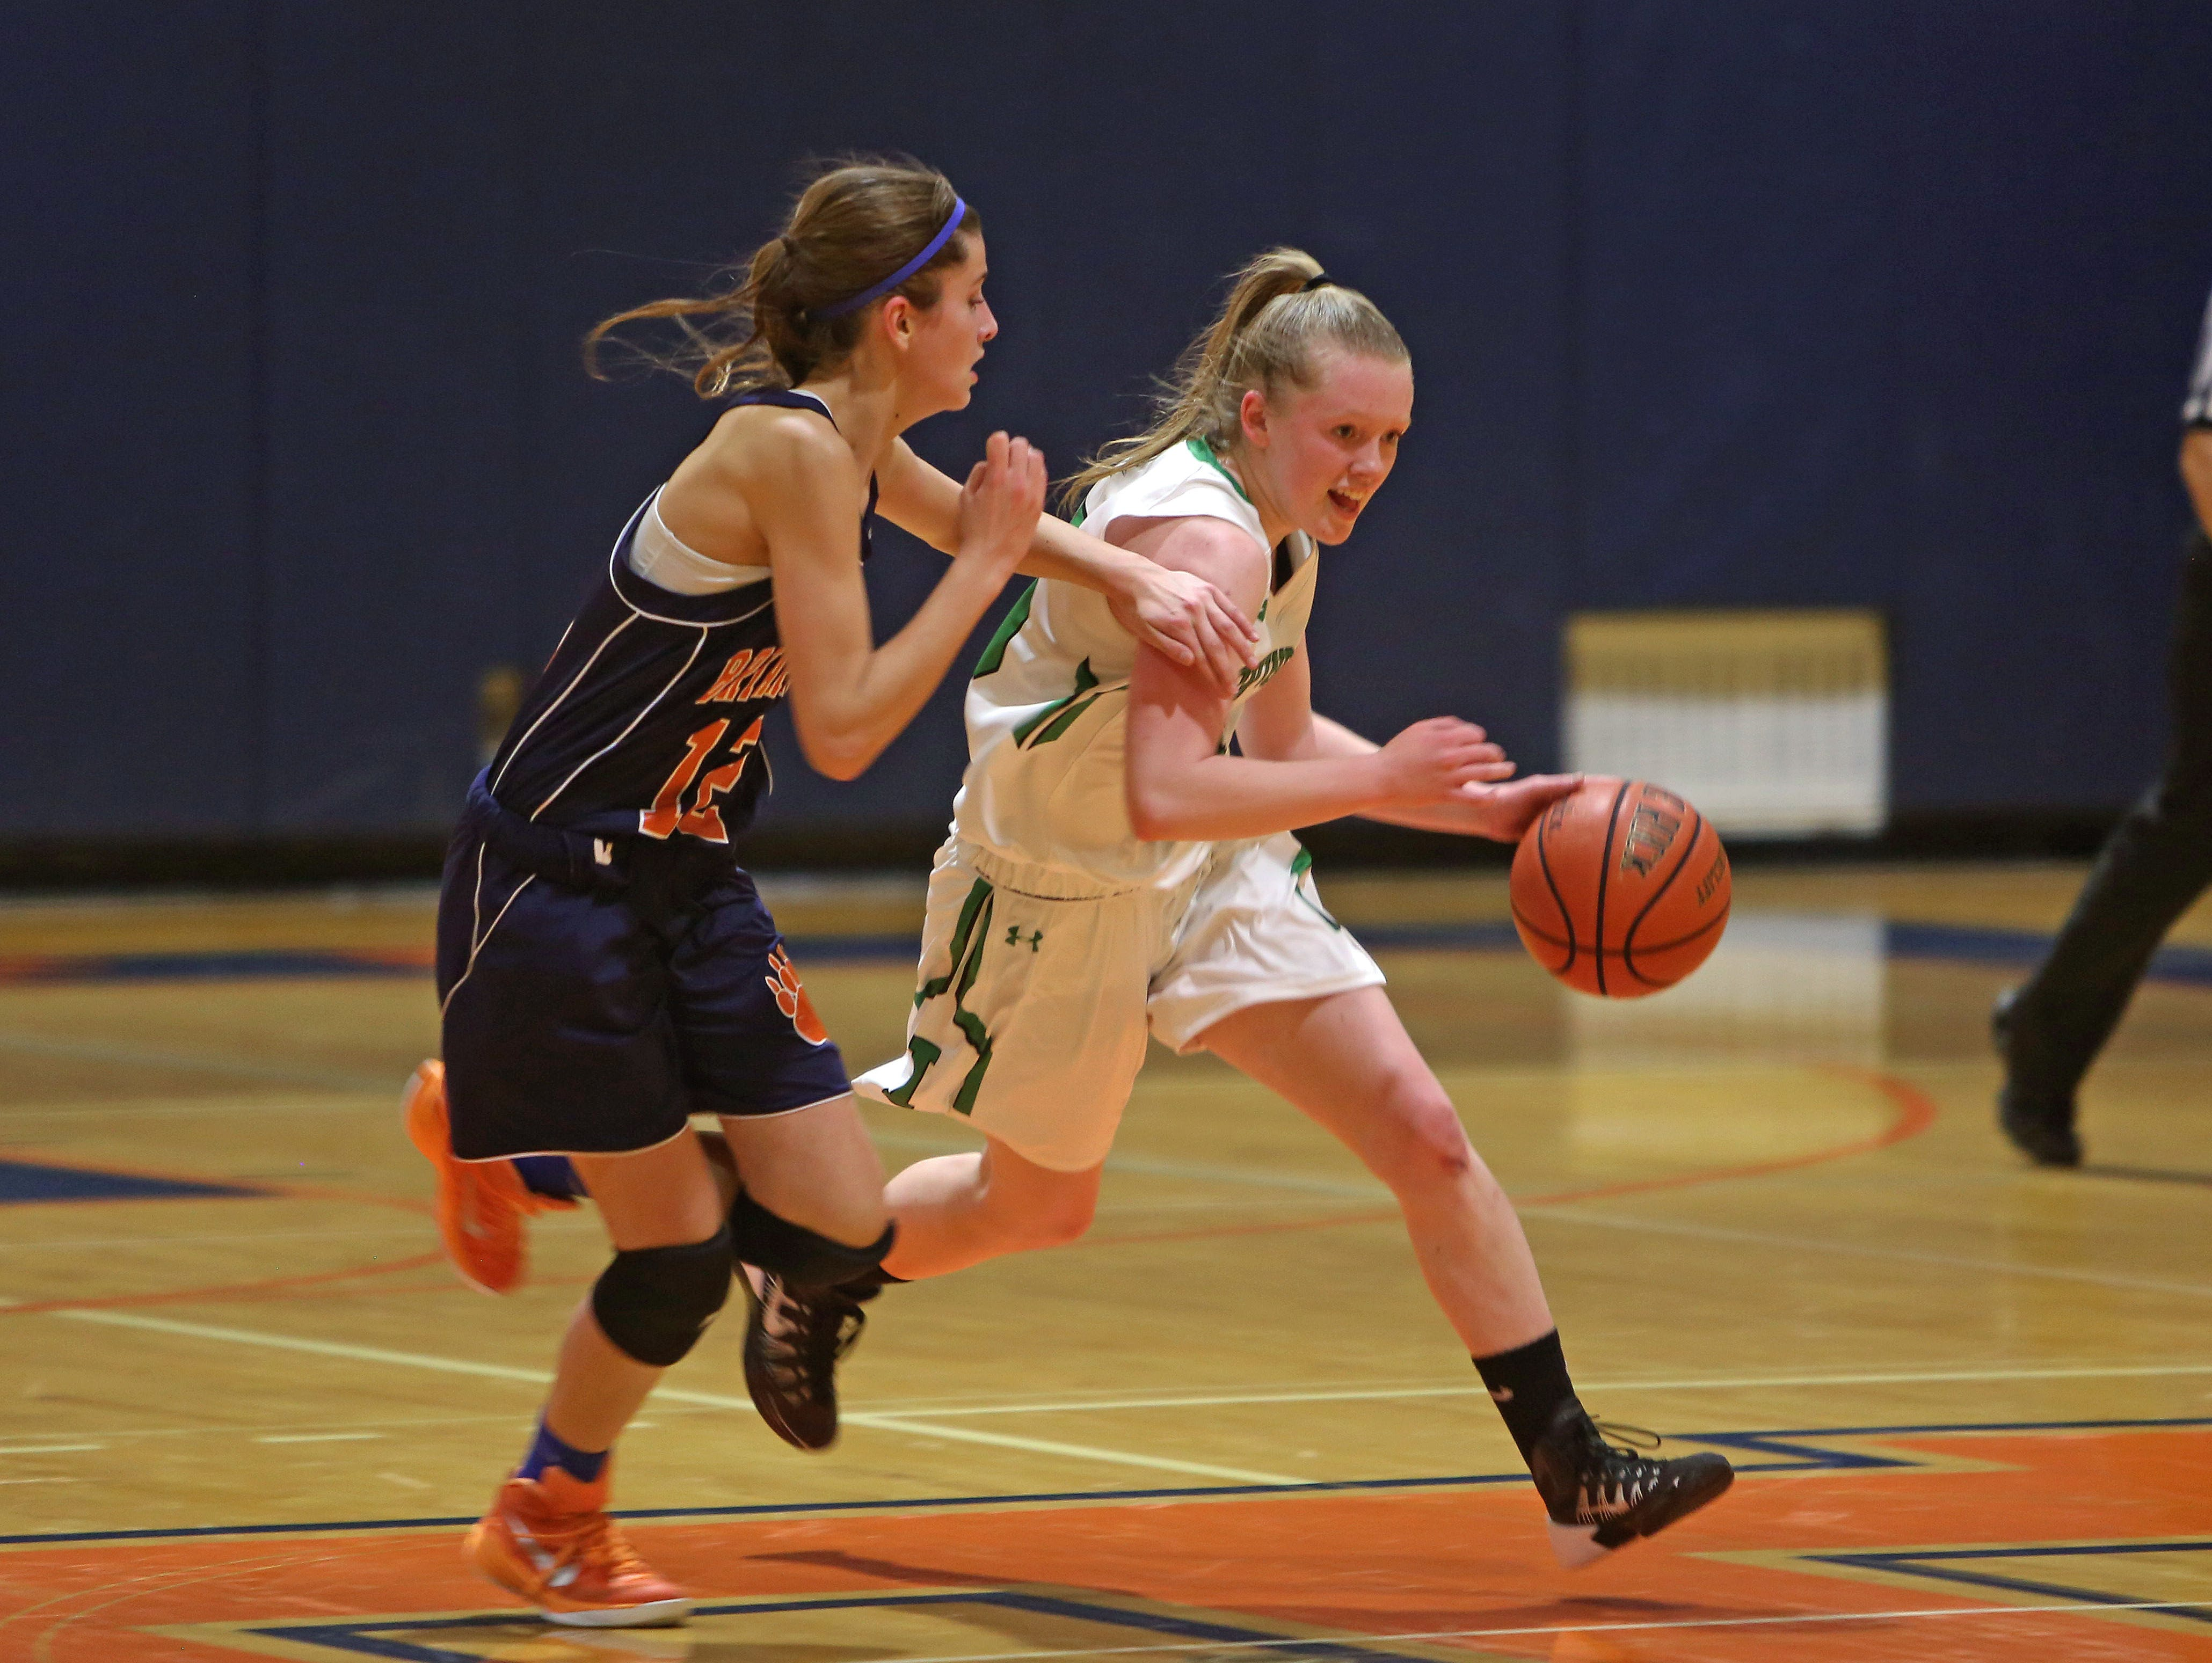 Irvington's Lindsay Halpin (15) drives by Briarcliff's Alana Lombardi (12) during girls basketball action at Briarcliff High School Dec. 1, 2015. Irvington won the game 71-57.